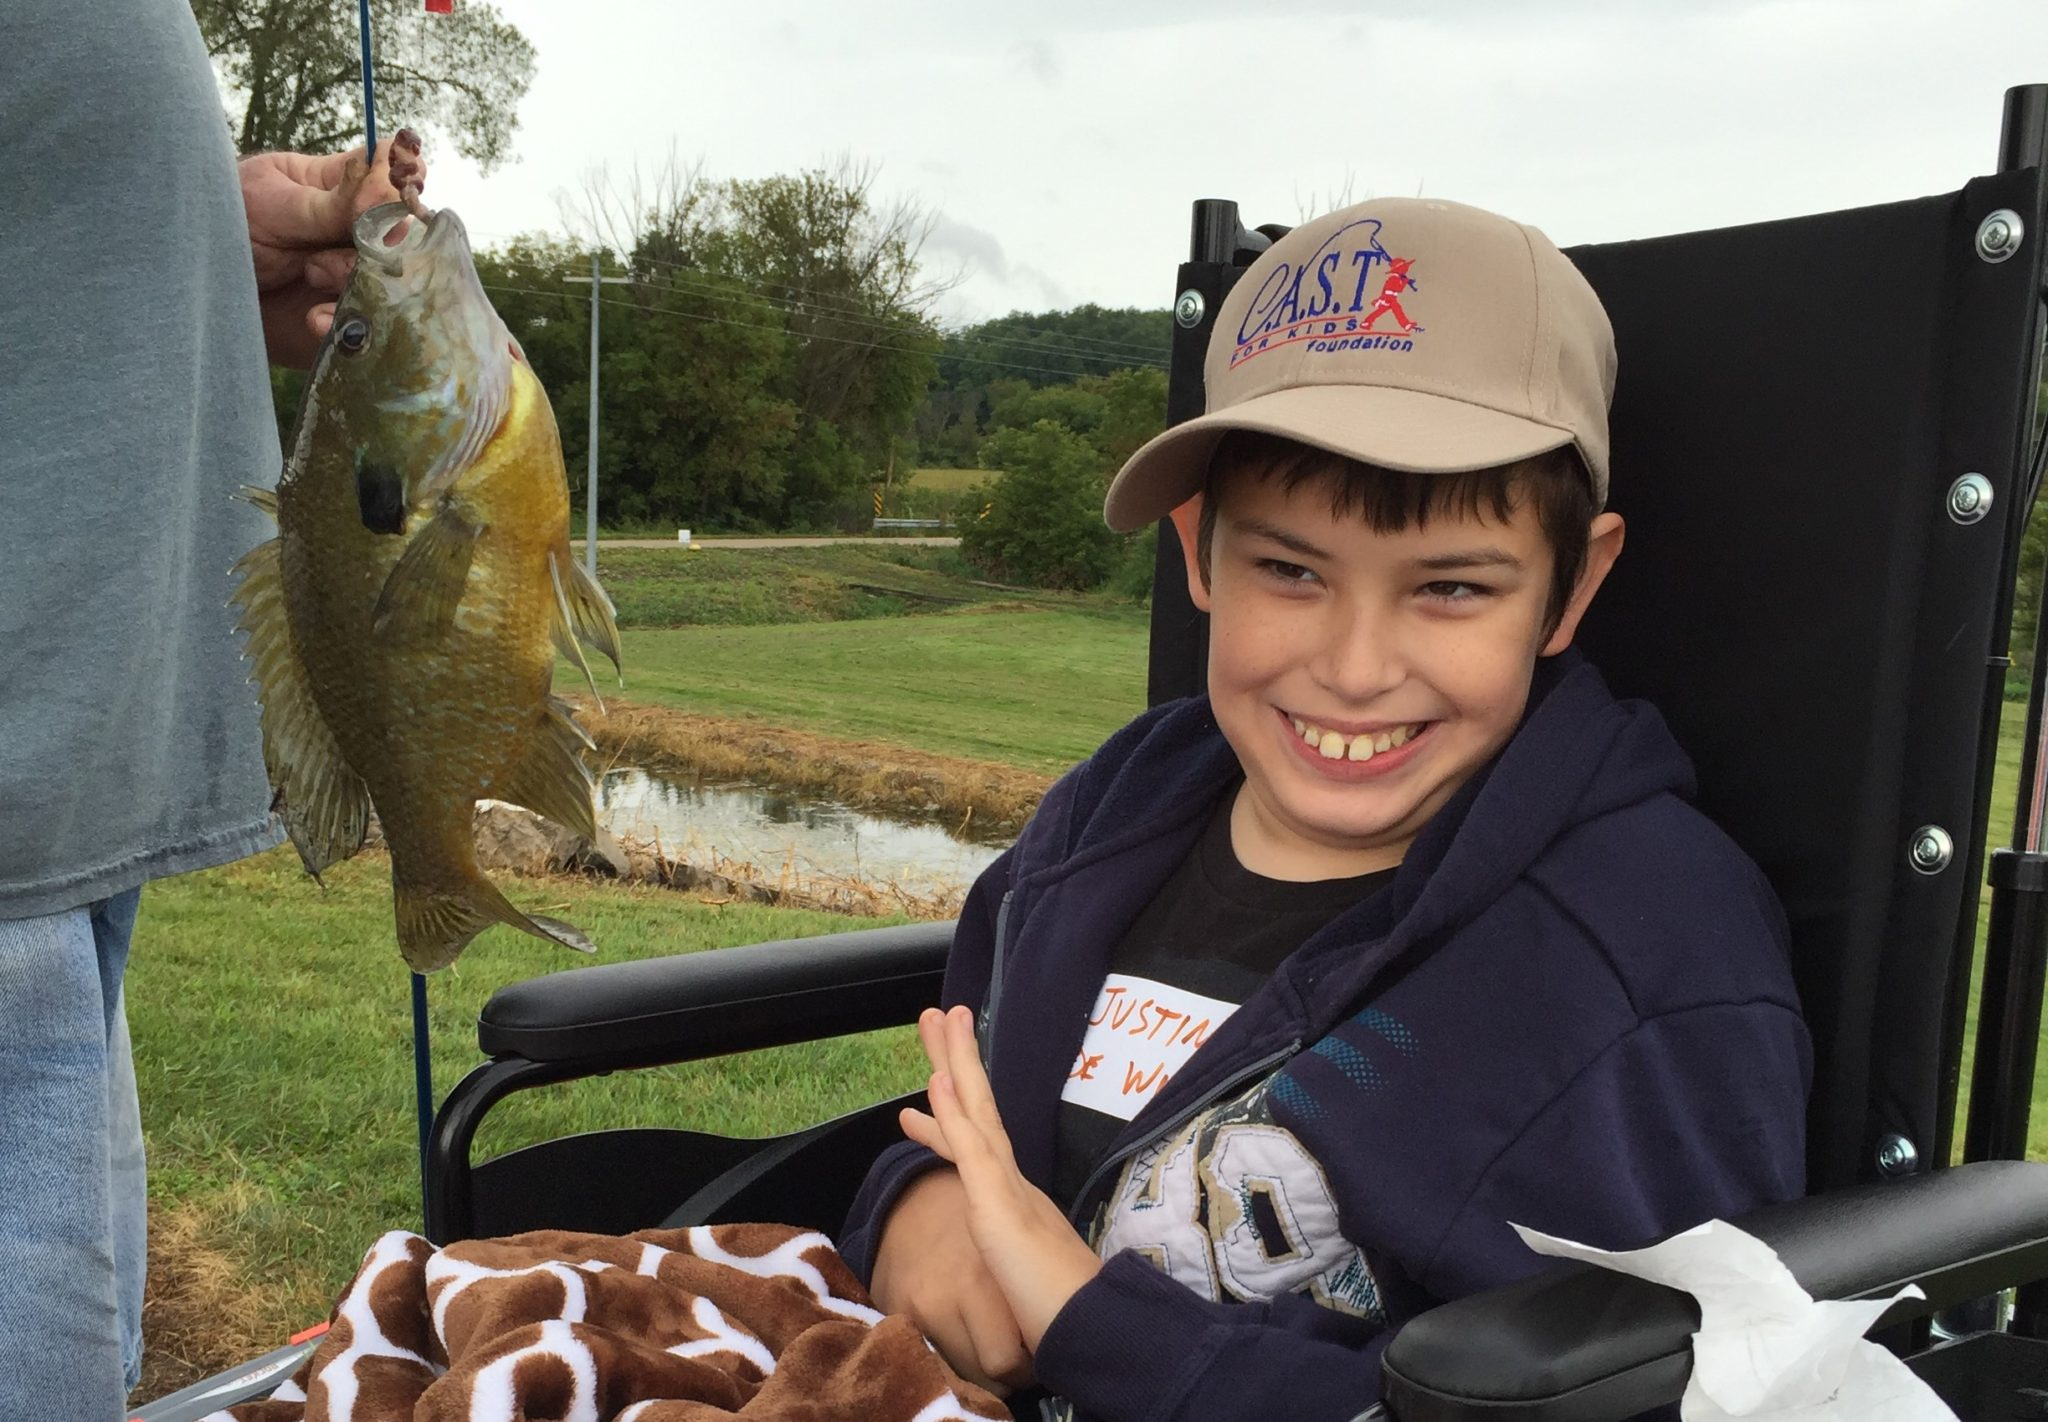 C.A.S.T. for Kids – Rock County Pond (WI)